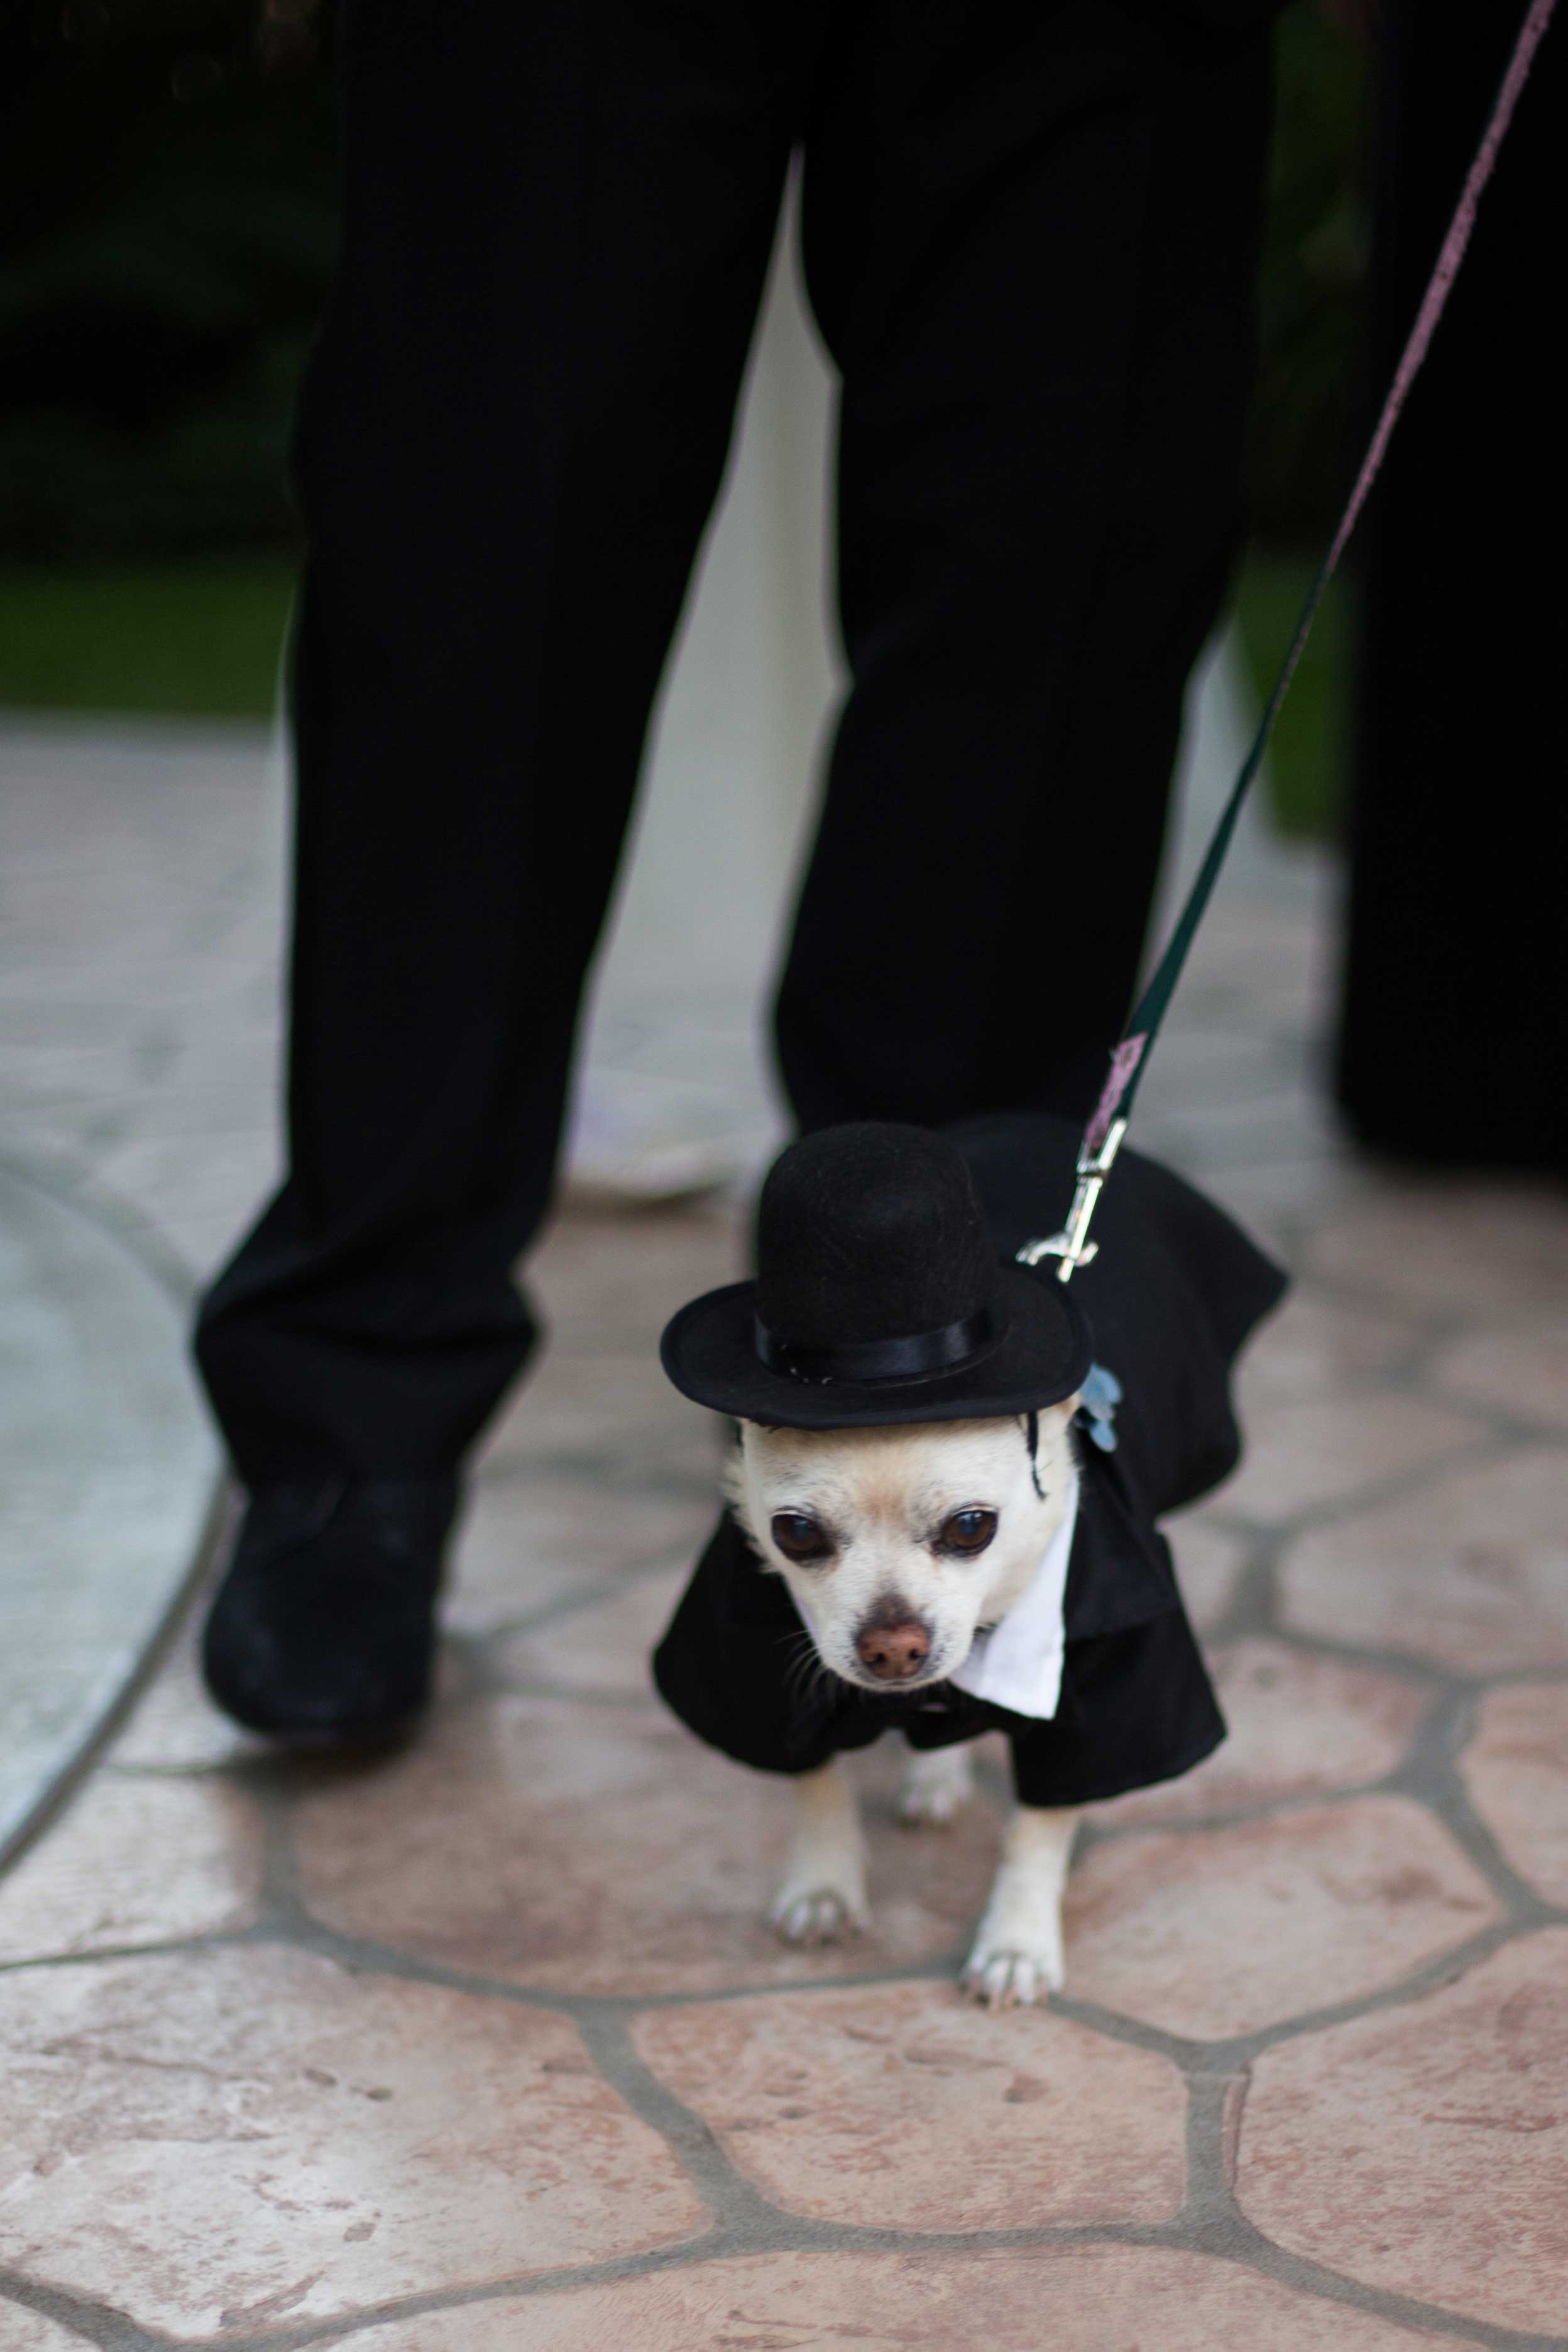 Little dog chihuahua at wedding ceremony in tuxedo and top hat